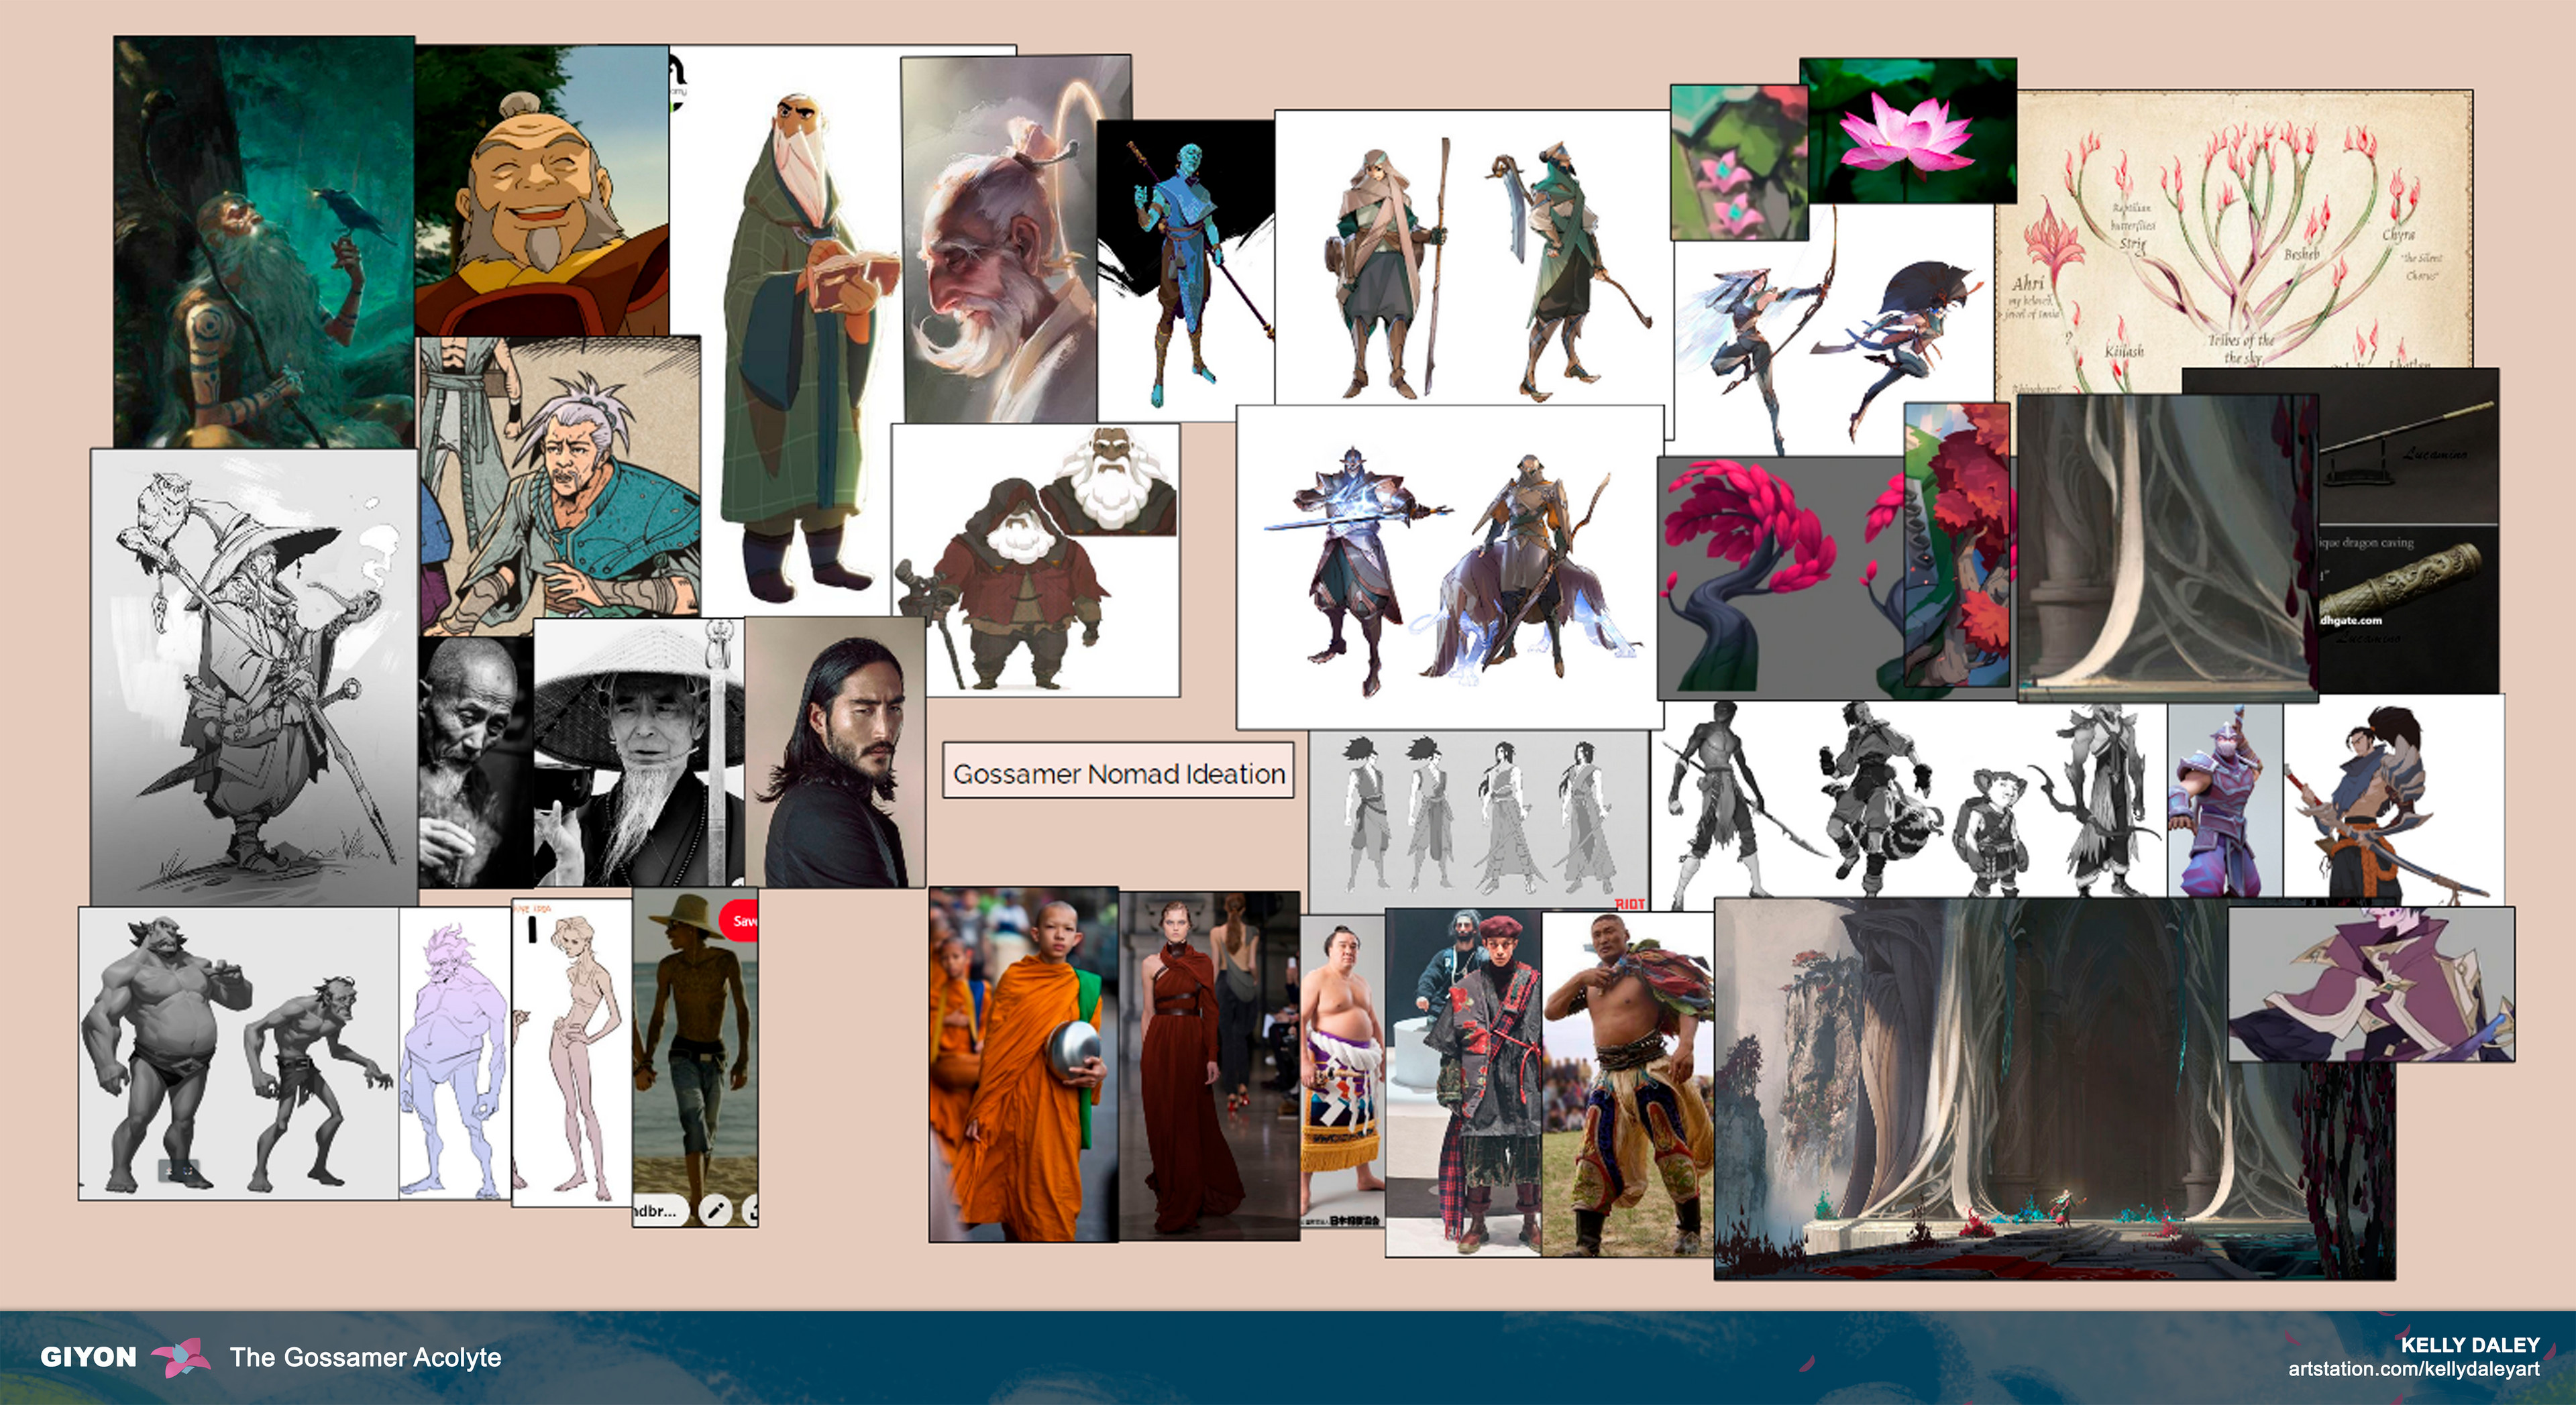 """The next step towards visualizing Giyon was to grab references of Ionian characters, textures + real life clothes, and images of """"old man"""" characters that successfully exist across entertainment. This aided in starting my ideation process."""